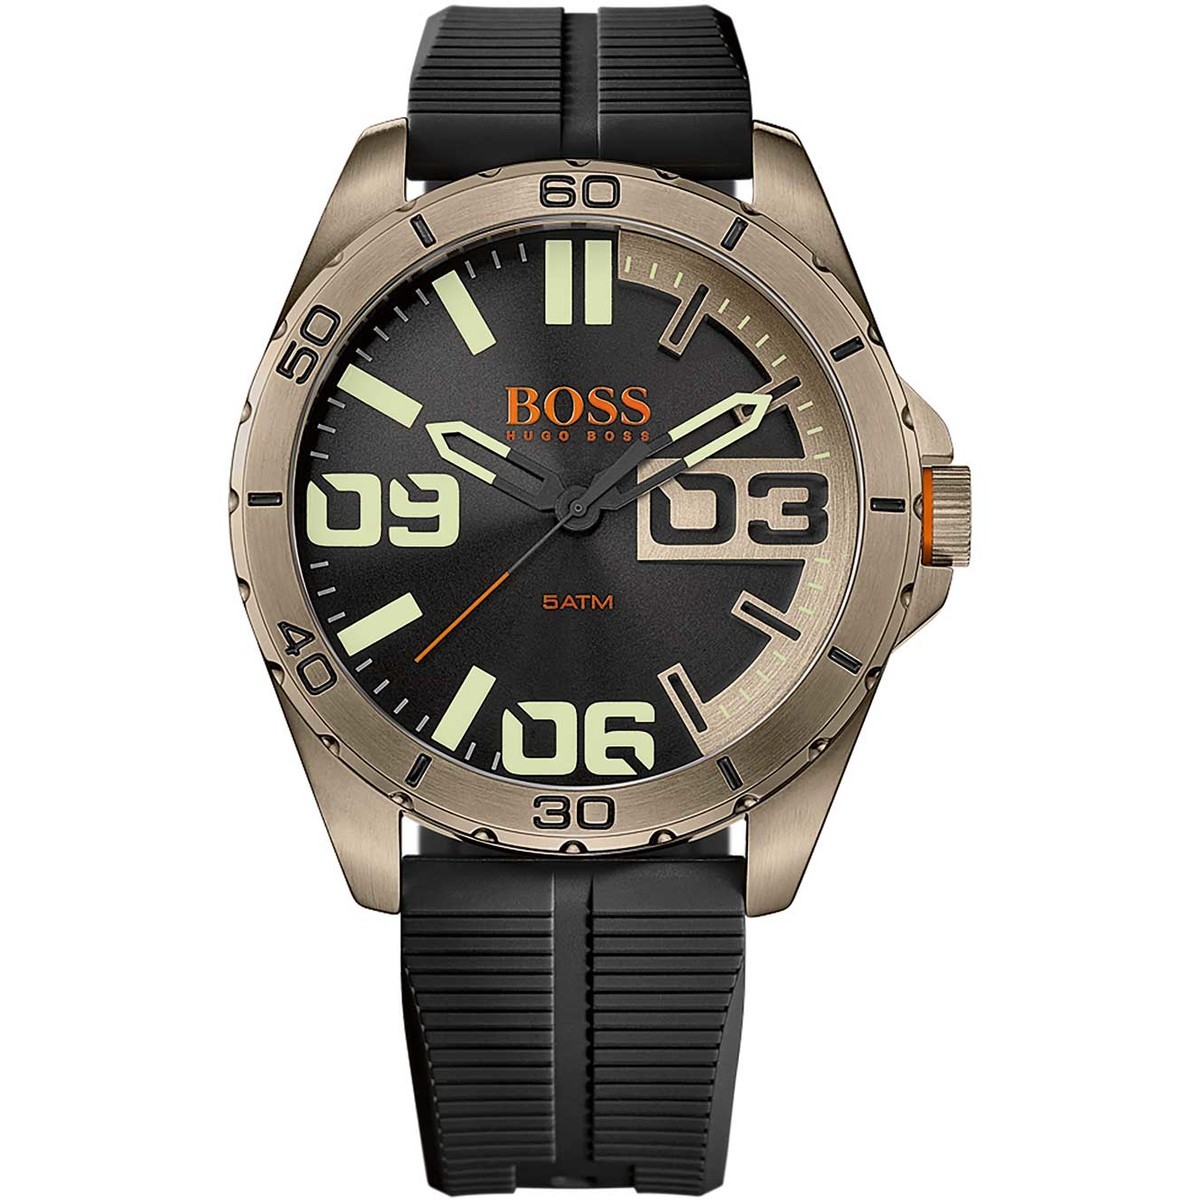 Ceas barbatesc Hugo Boss 1513287 de mana original